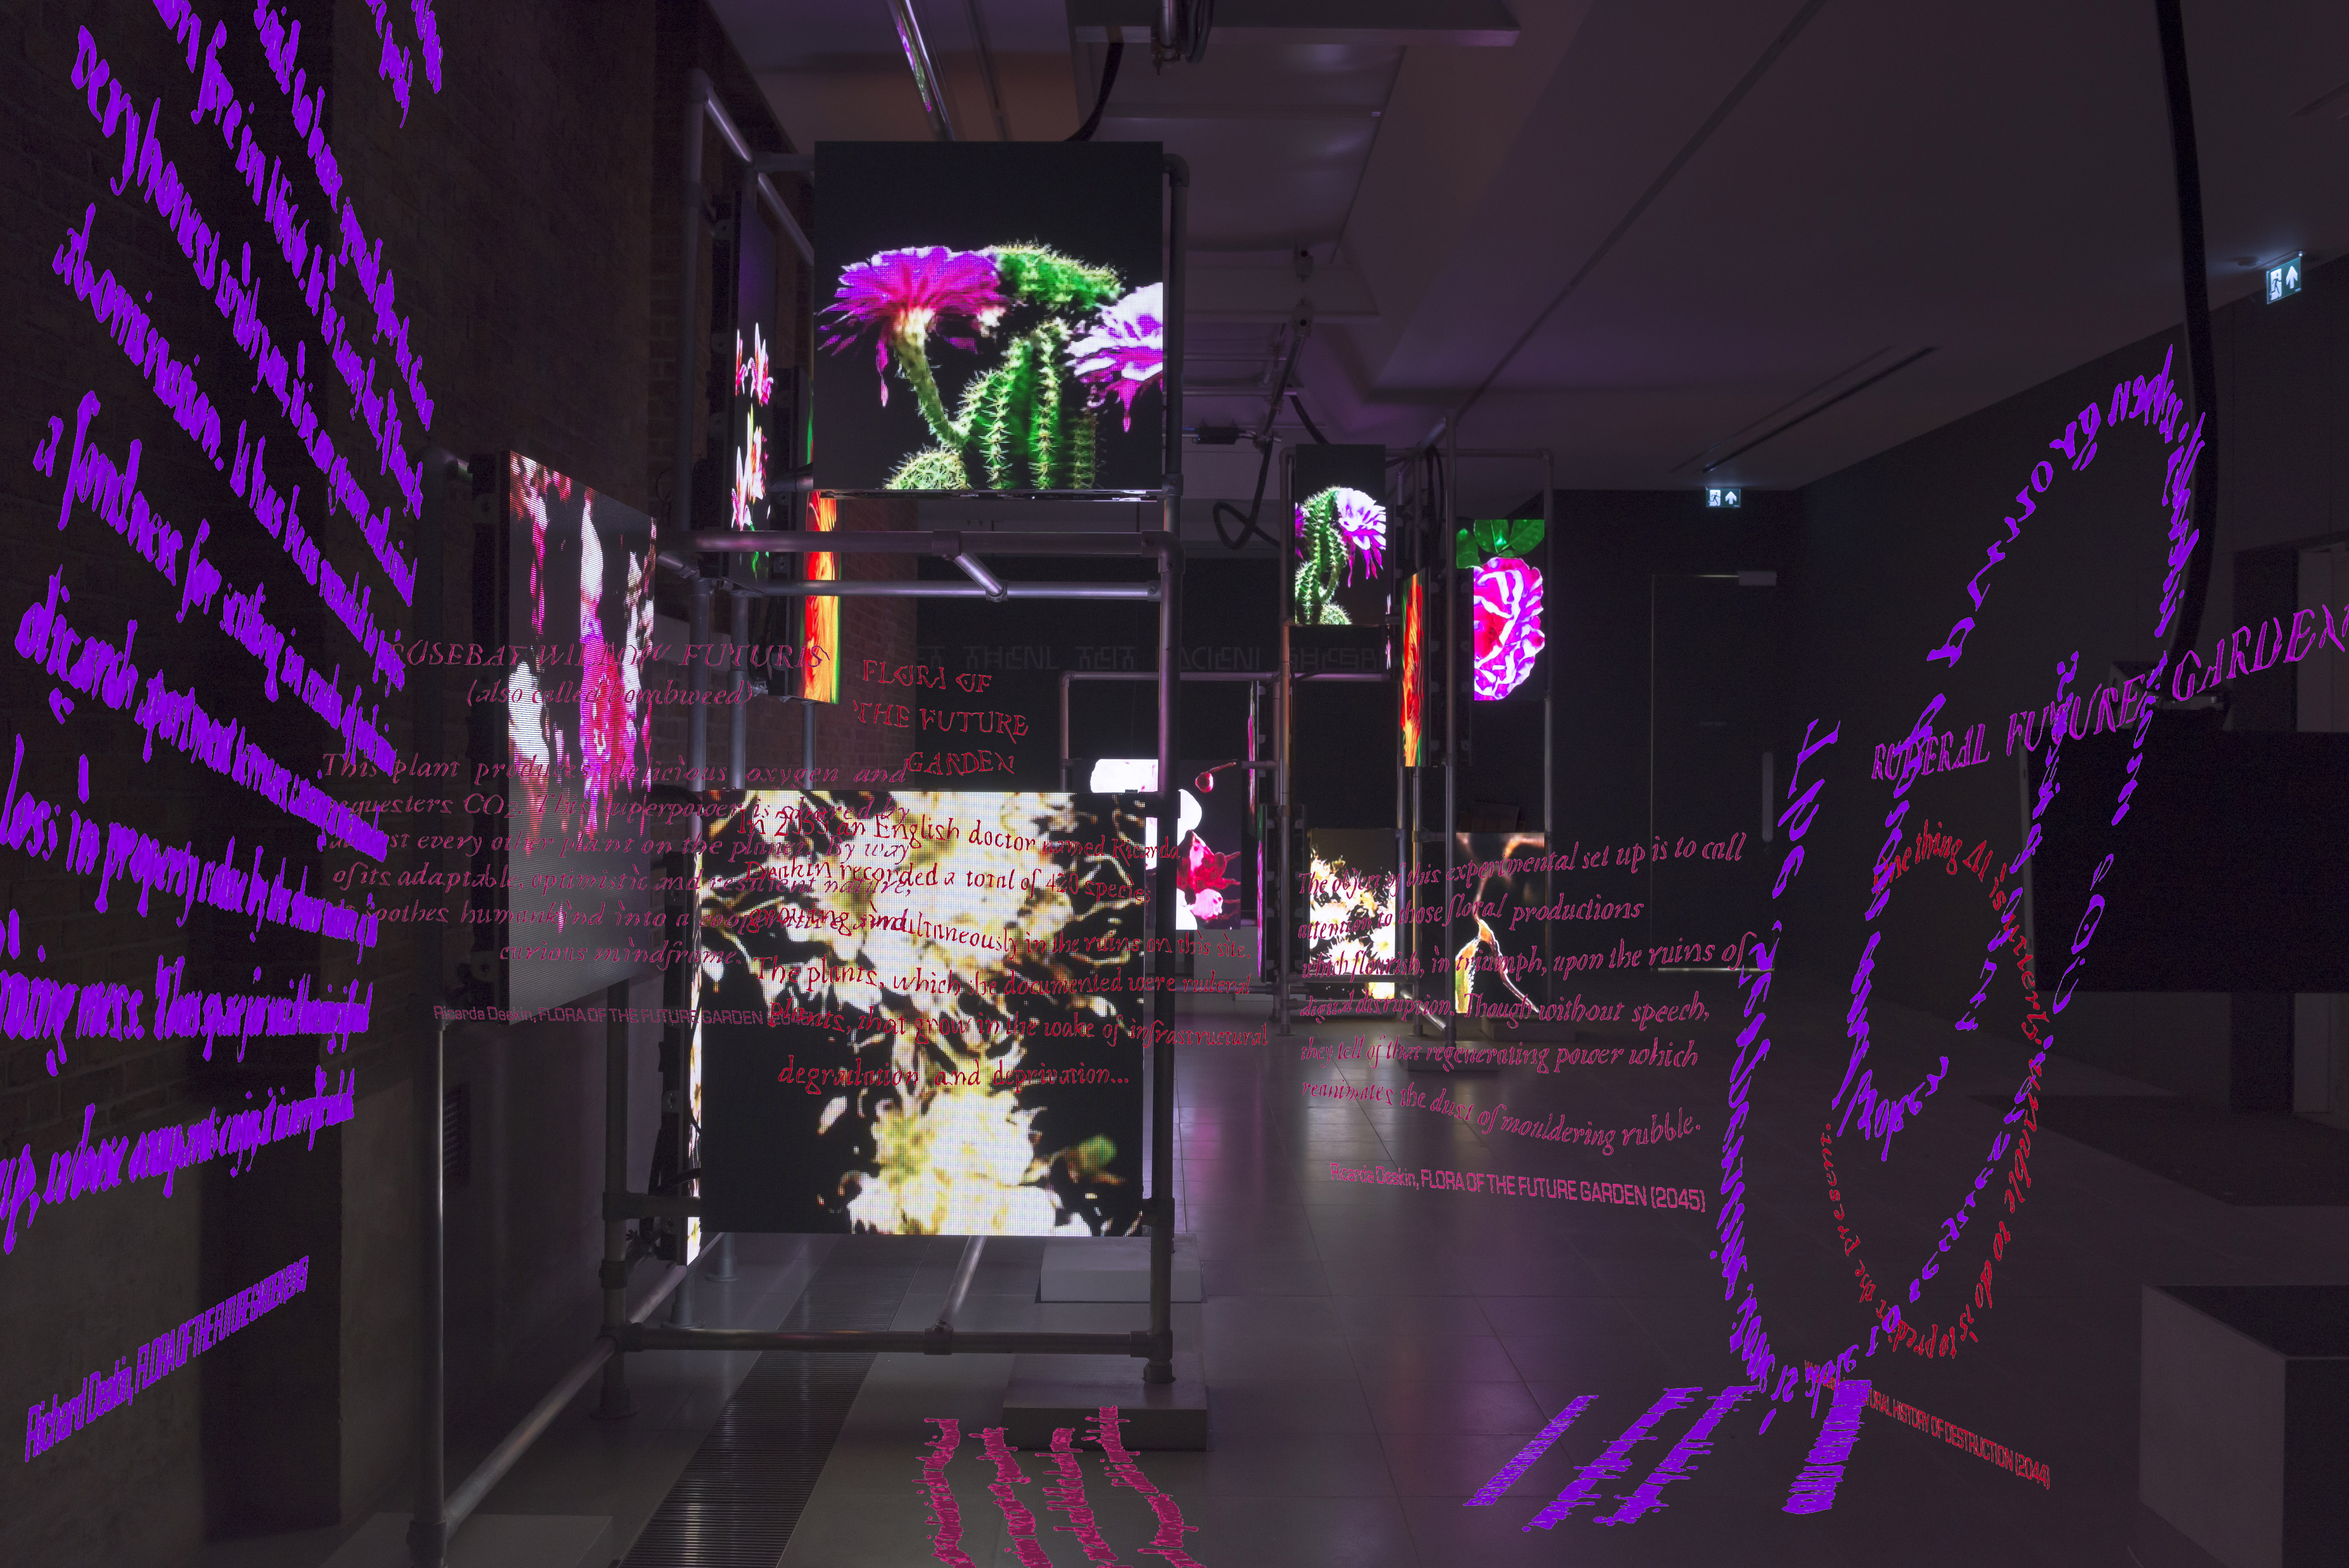 A dark room with chunk of pink and purple texts floating around alongside screens showing stills of plants, as a part of artist Hito Steyerls's exhibition at the Serpentine Galleries in London